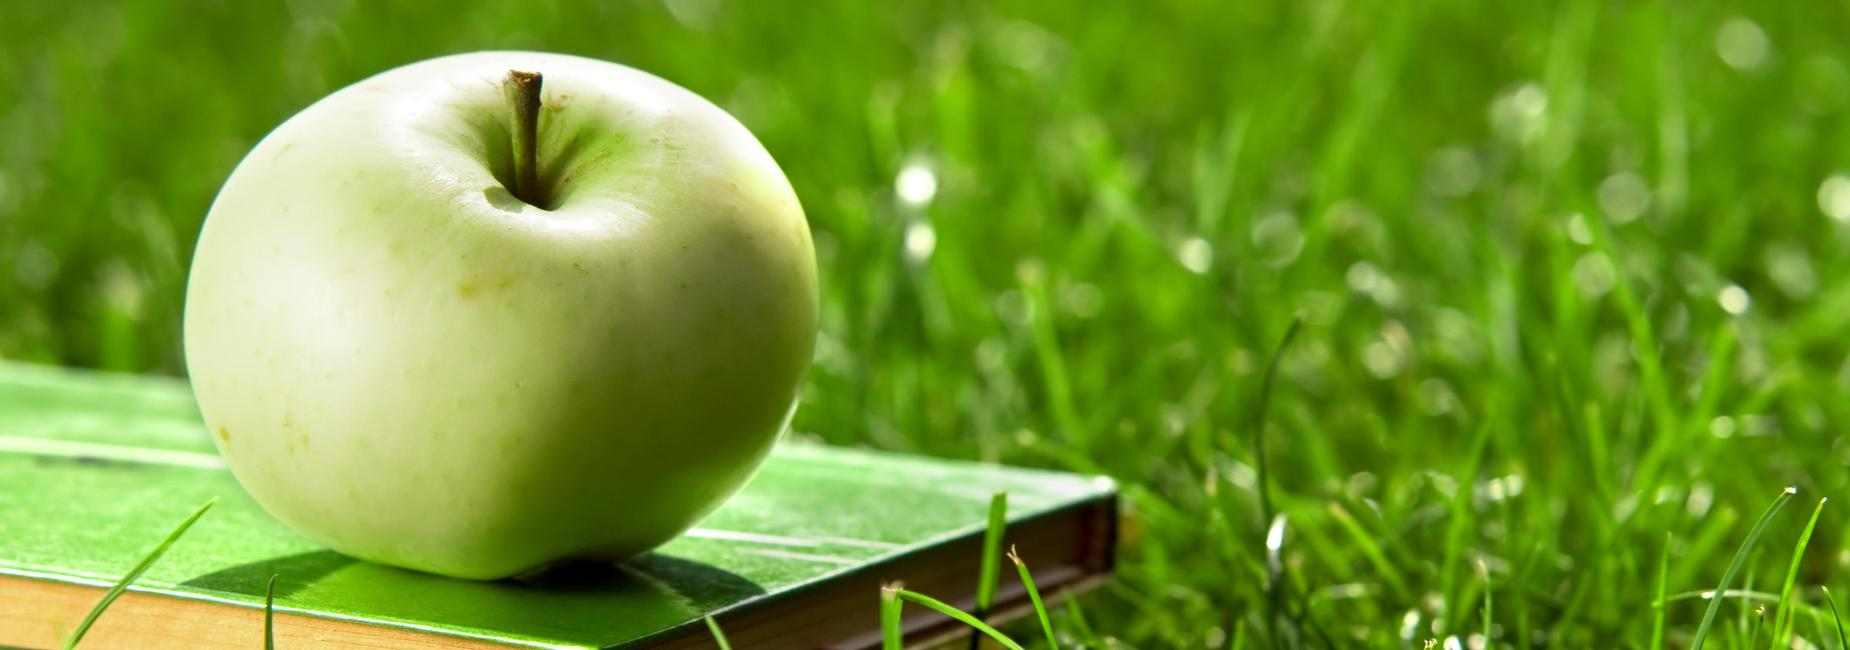 green apple and book